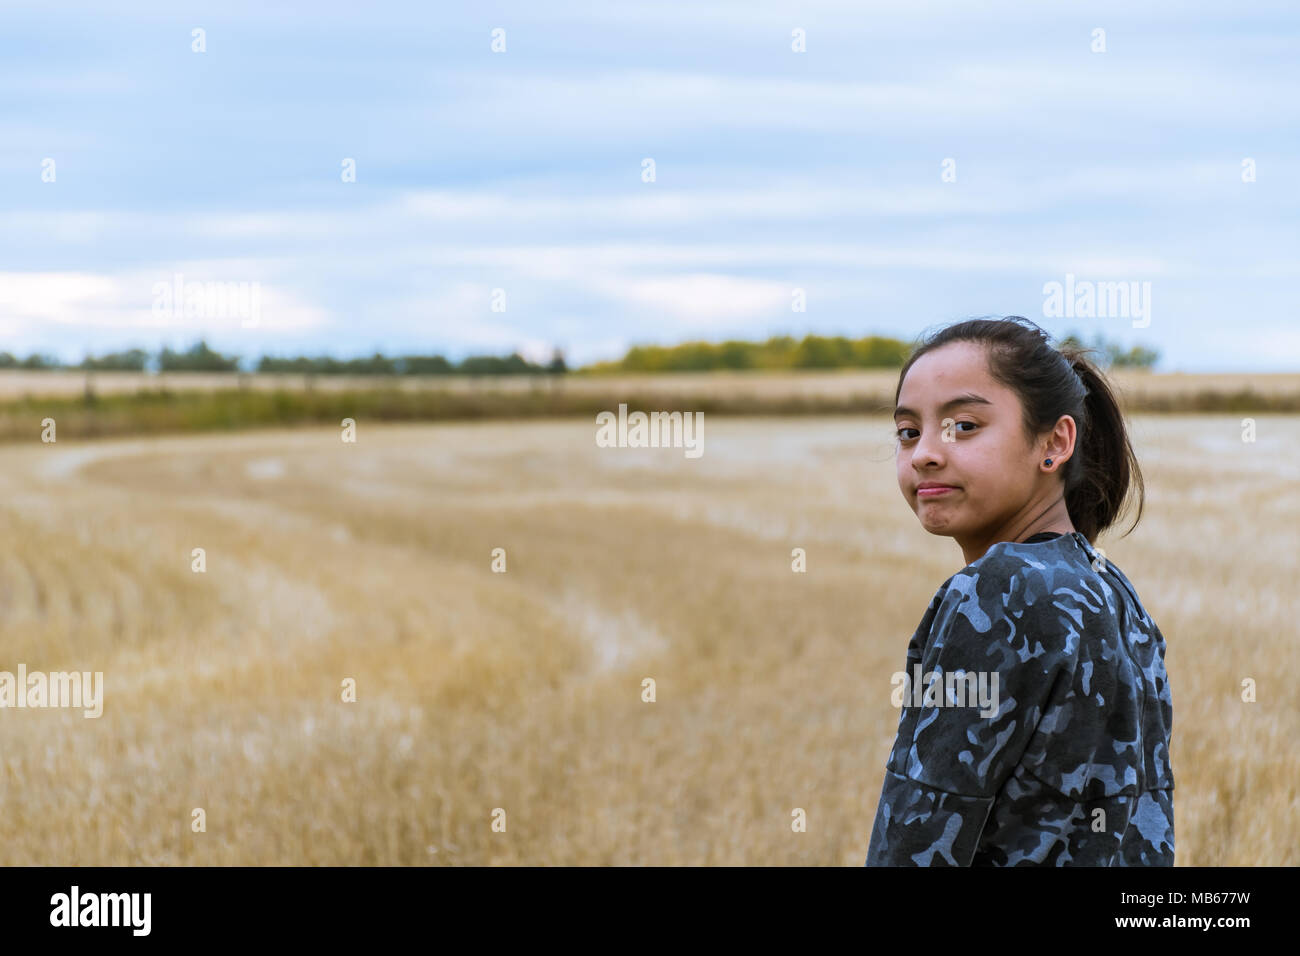 Young Girl Exploring in a Field after a Harvest - Stock Image